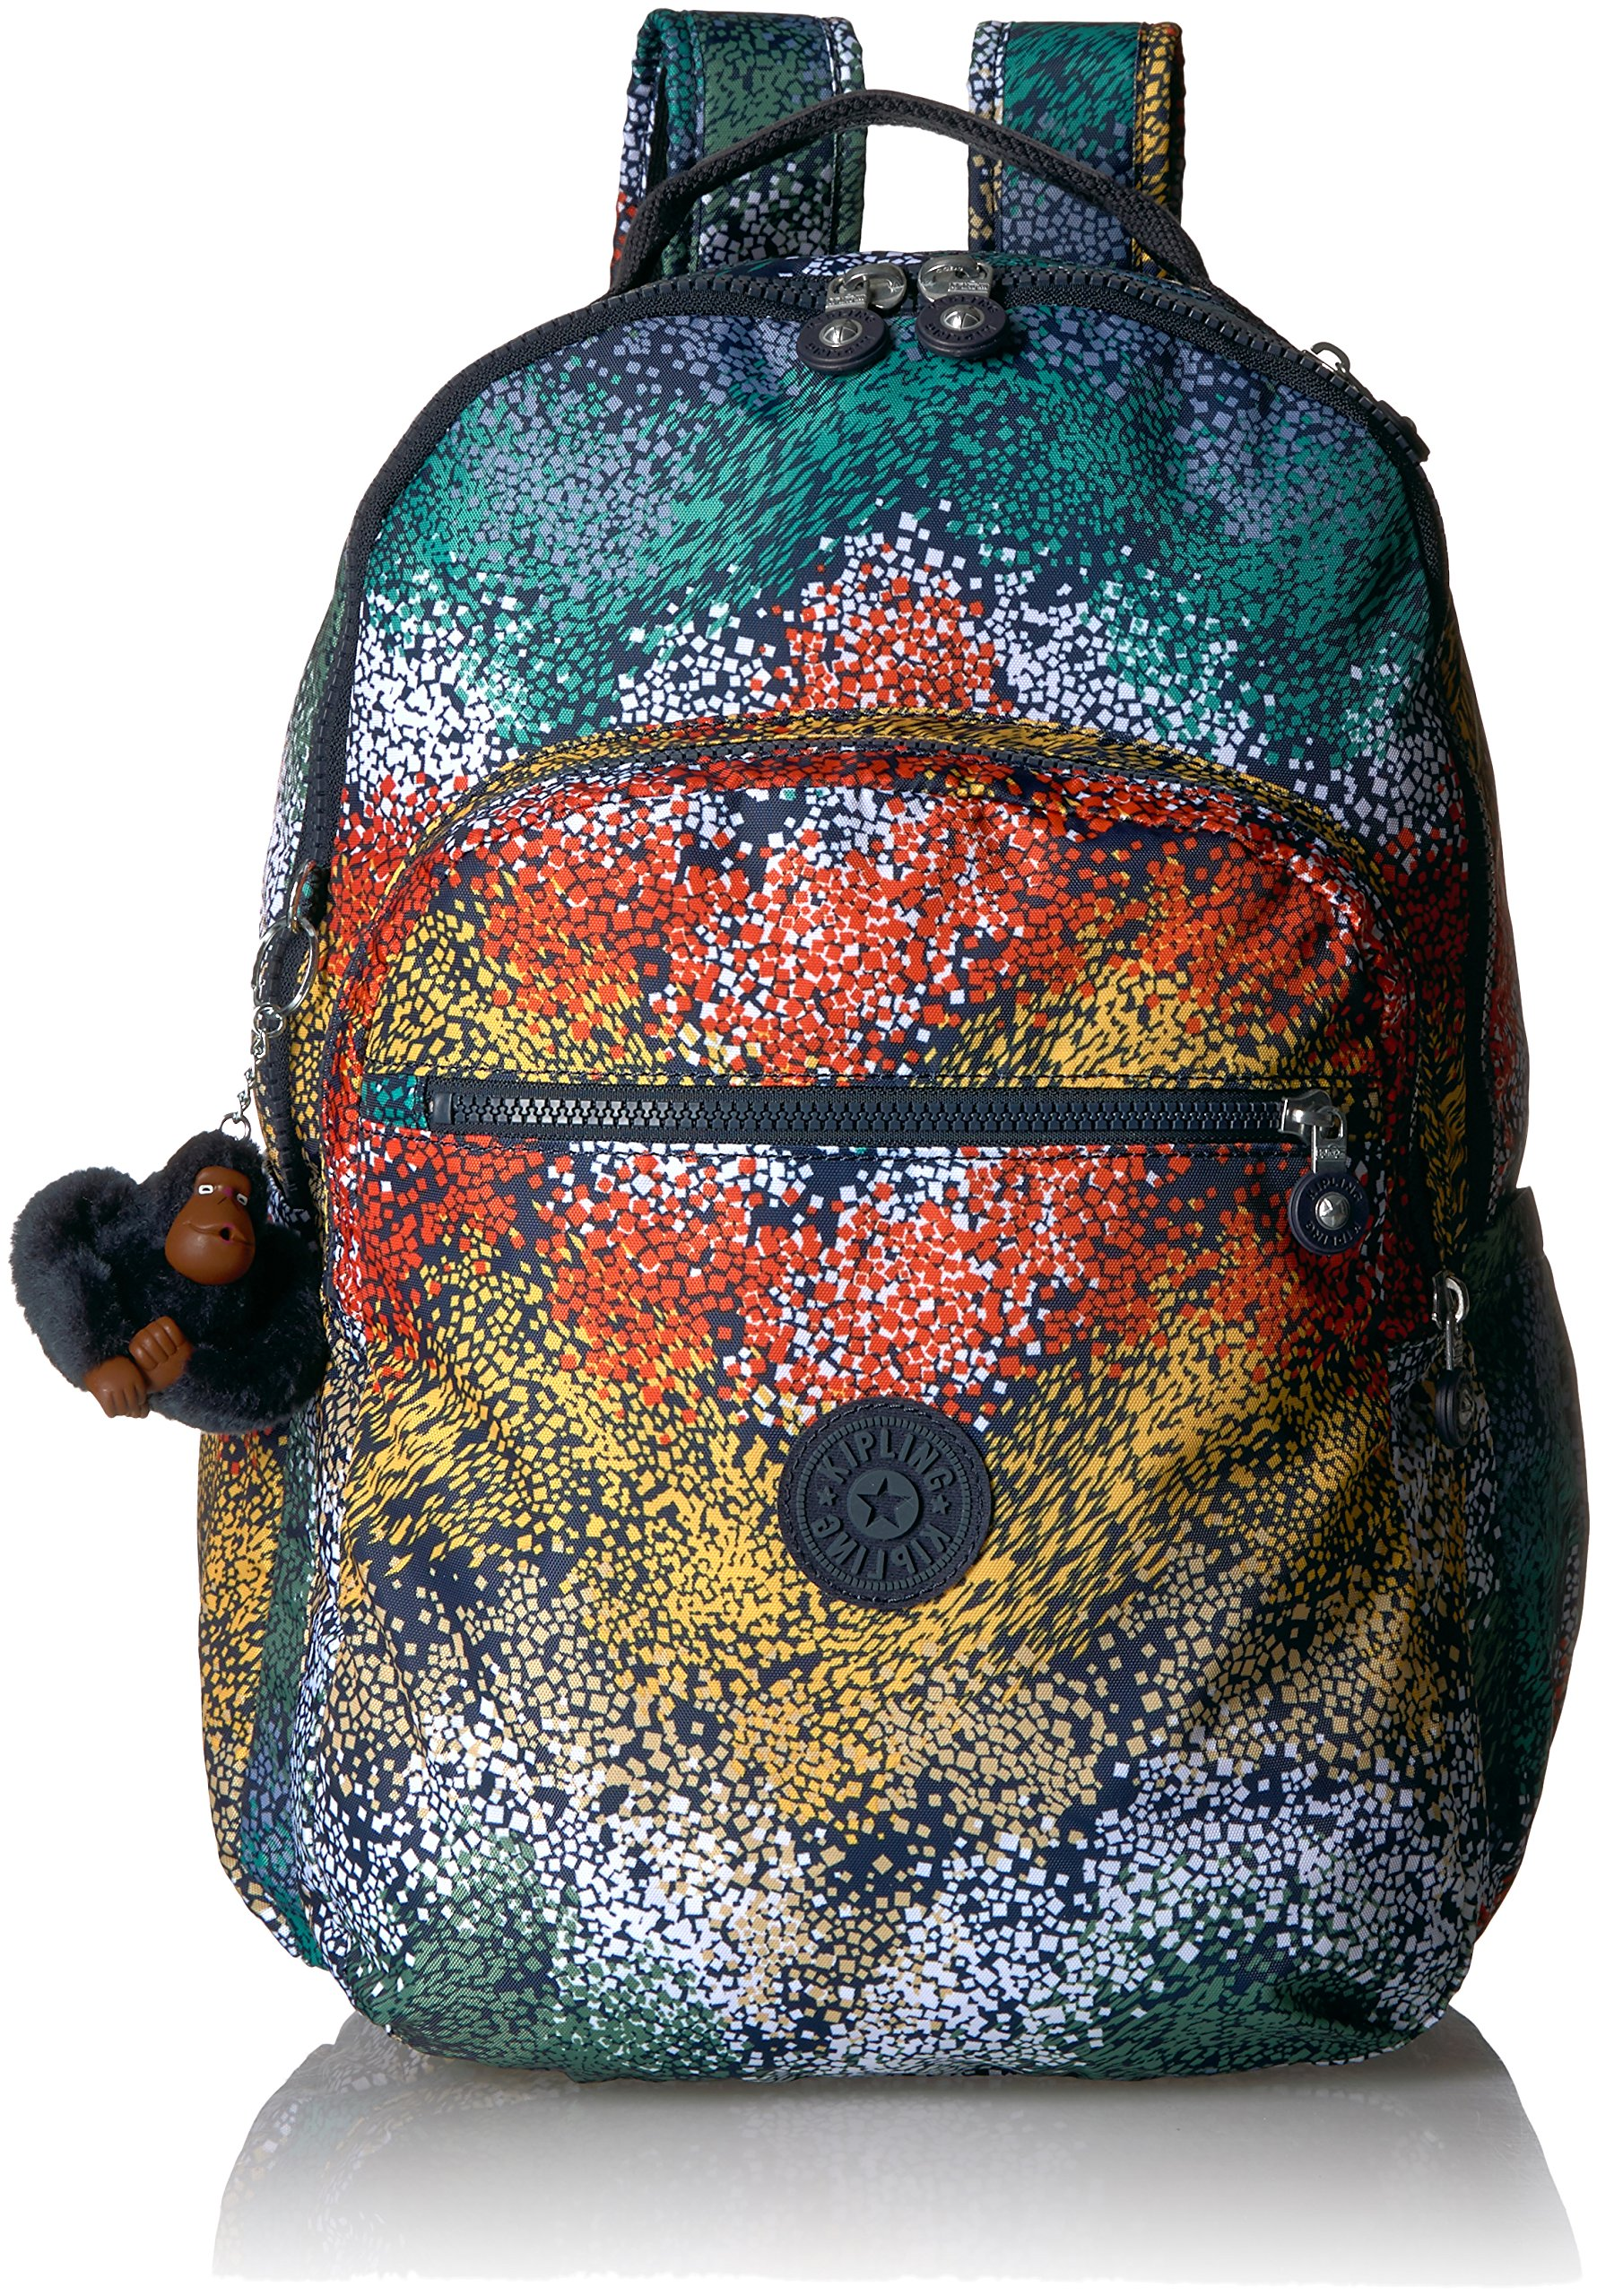 Seoul L Printed Laptop Backpack Backpack, WTRCLRRIVE, One Size